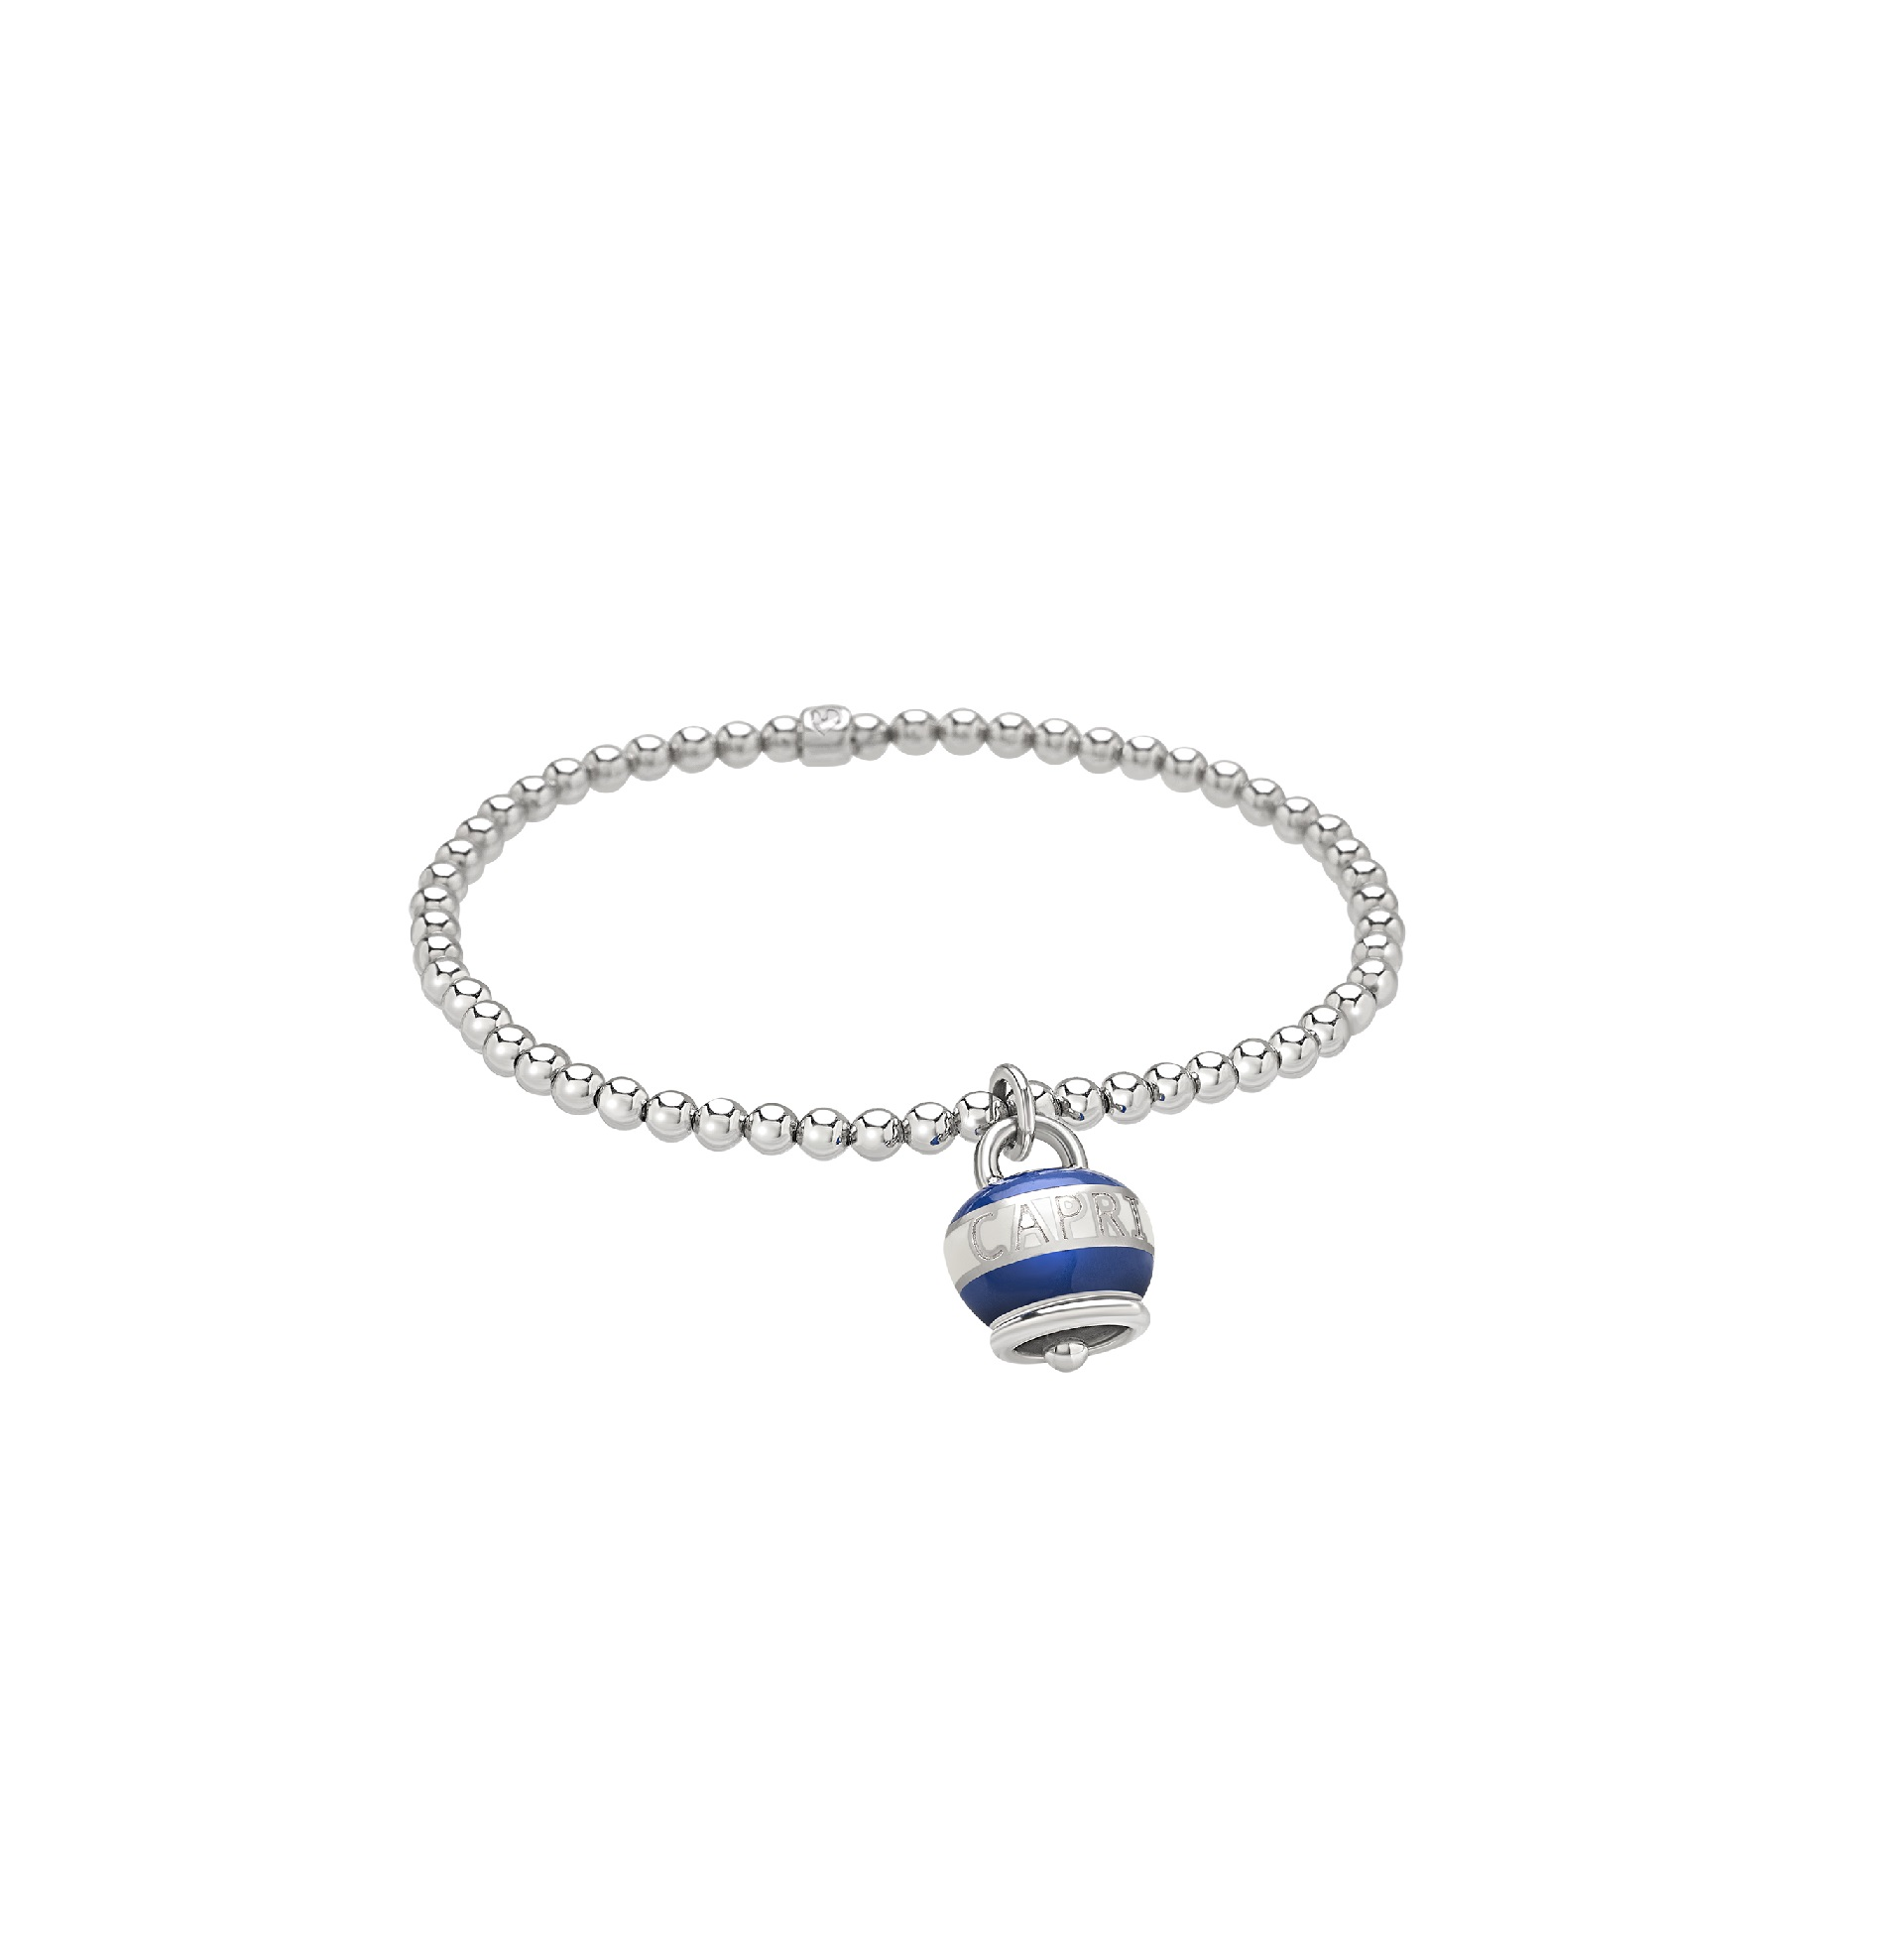 Chantecler Capriness Armband aus Silber und blauem Emaille